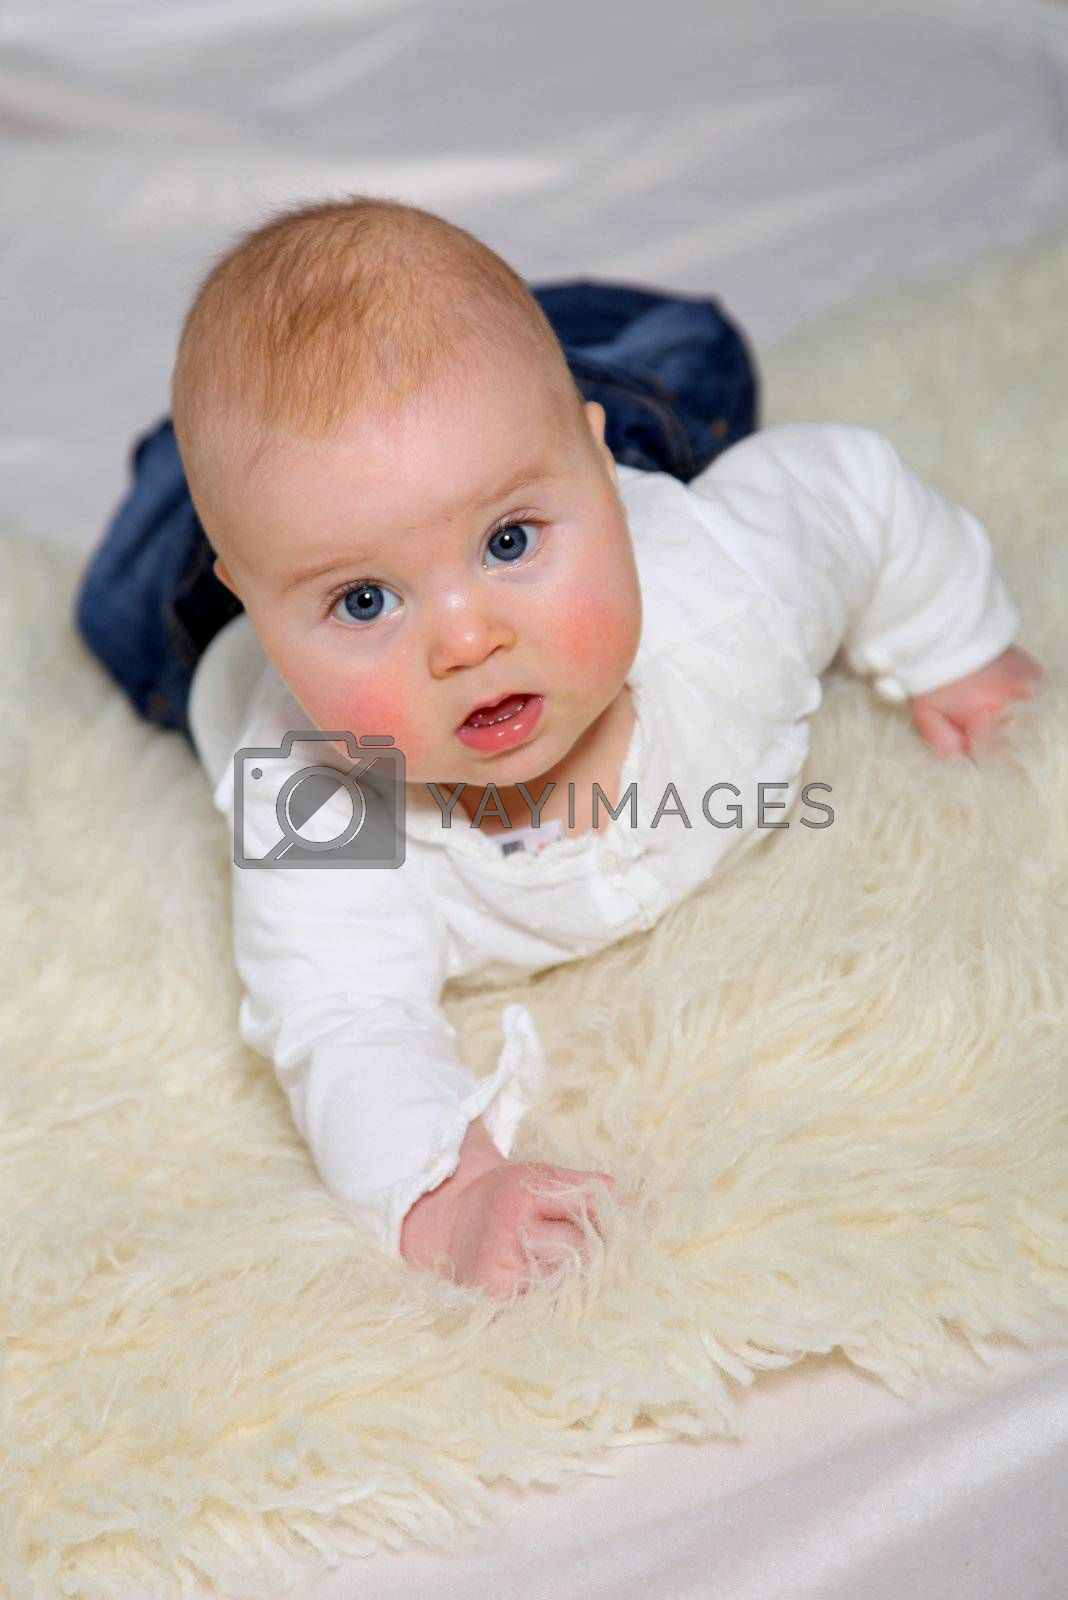 a baby with blue eyes on the belly and looks up into the direction of the camera